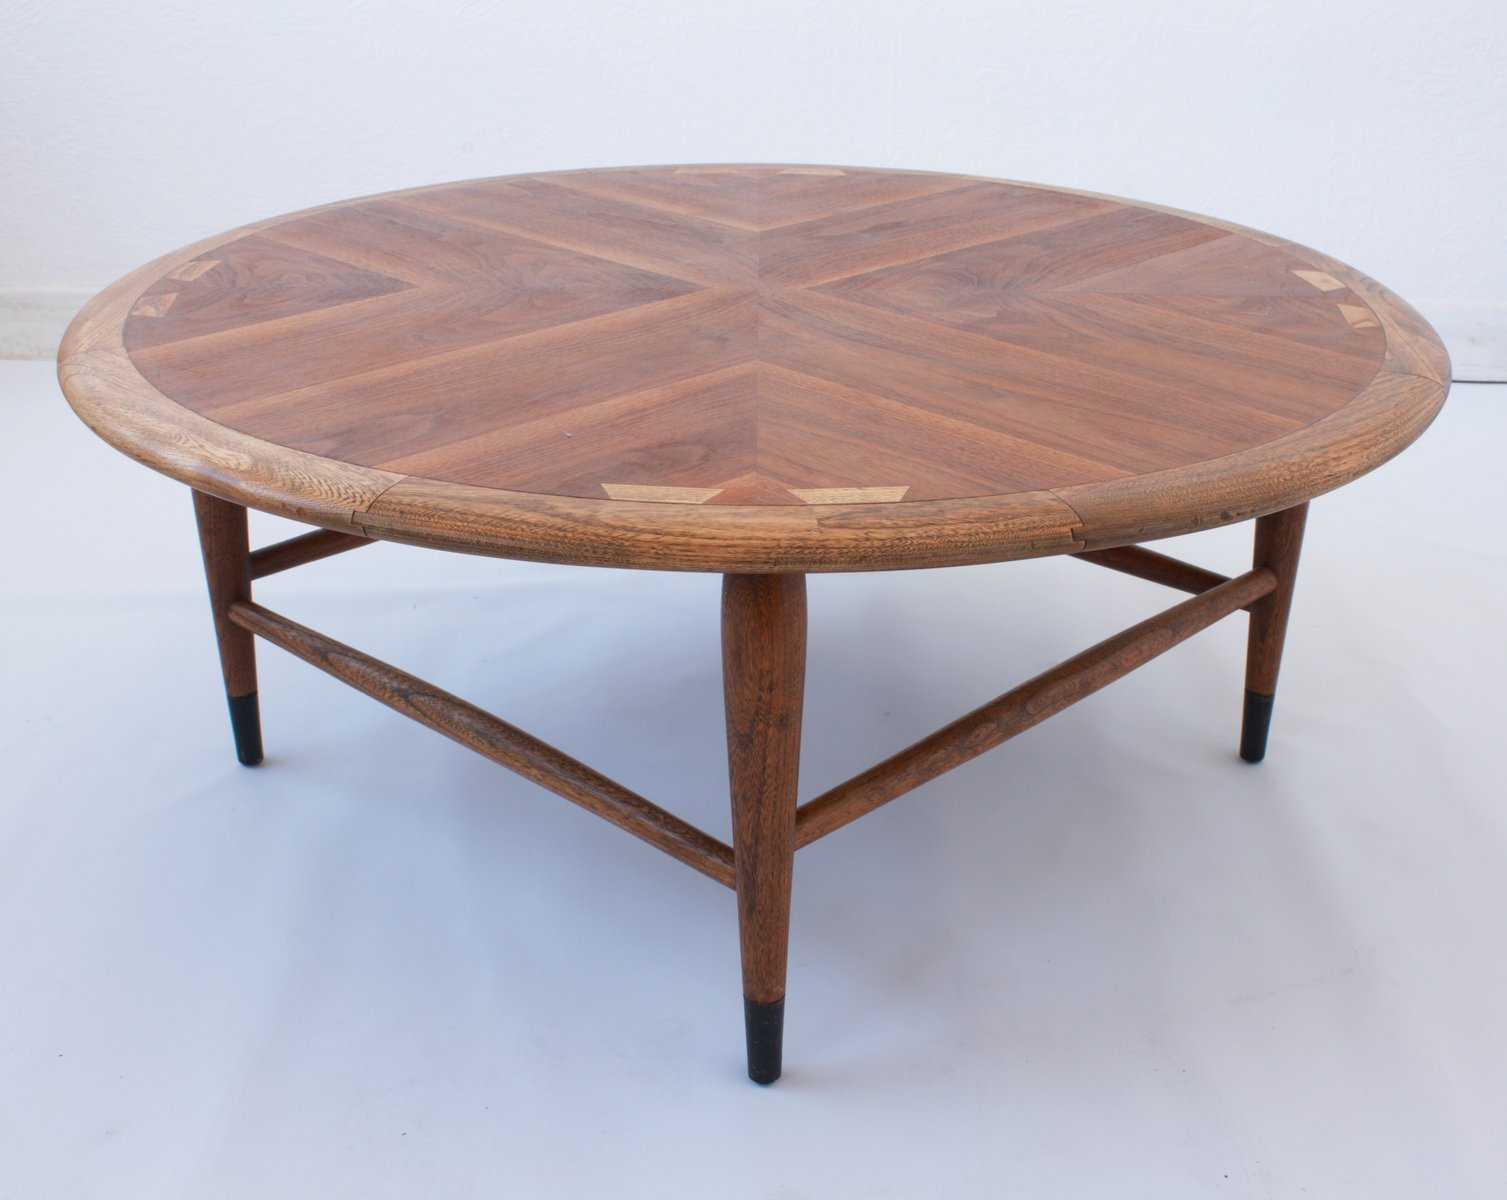 walnut marquetry coffee table by andre bus for lane furniture 1960s cafe konrad vib. Black Bedroom Furniture Sets. Home Design Ideas